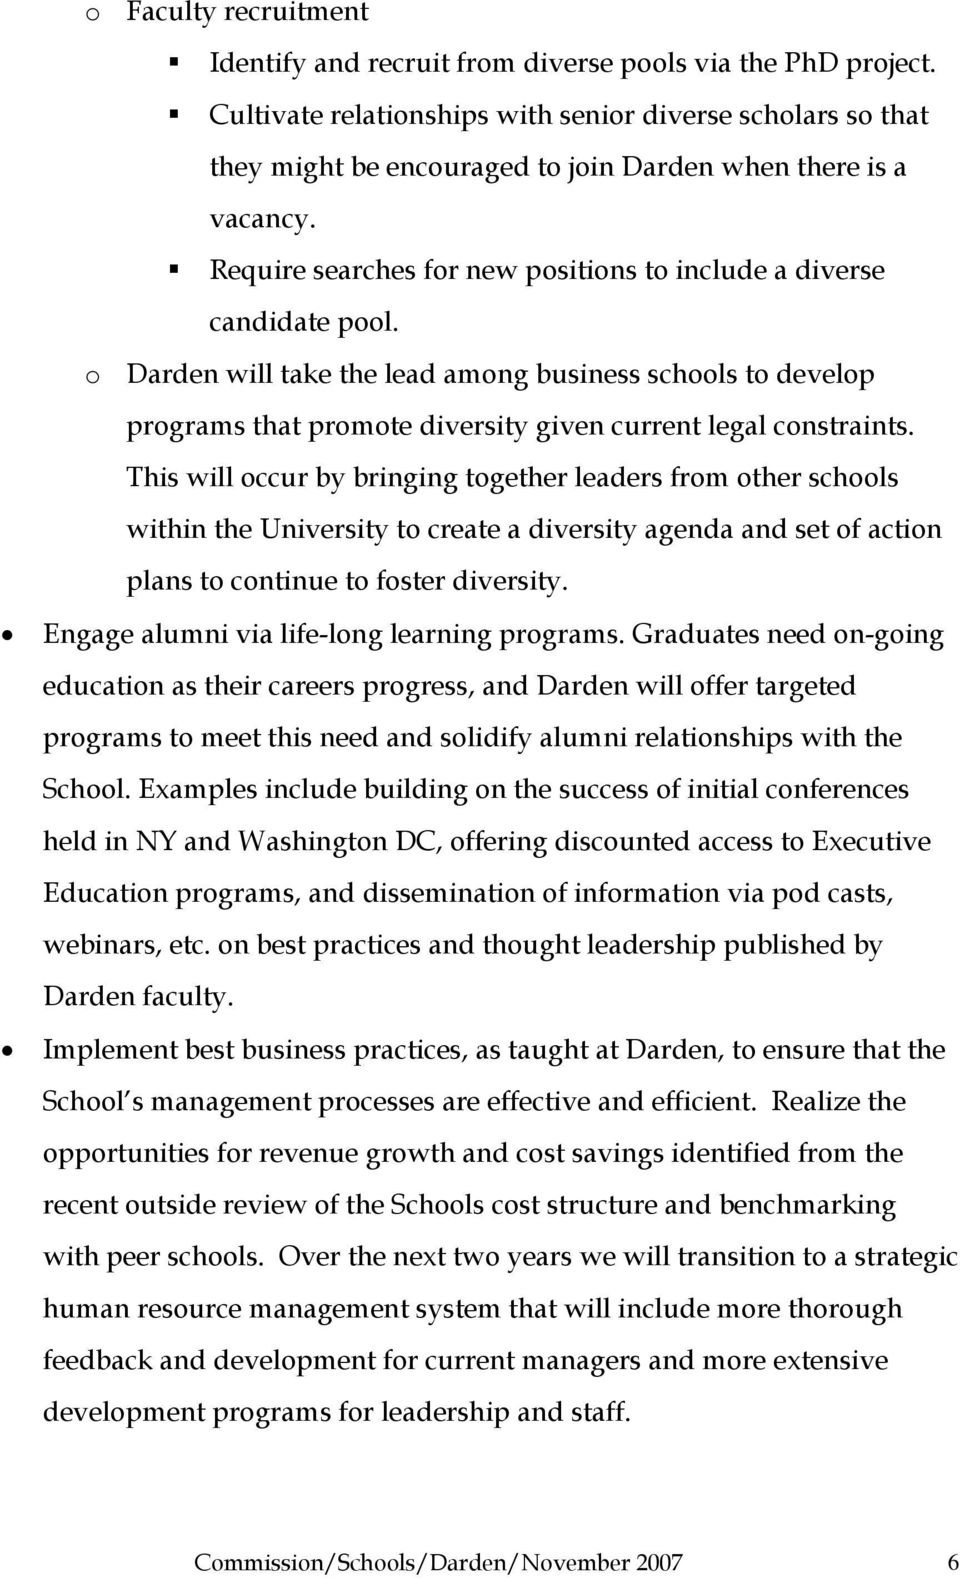 o Darden will take the lead among business schools to develop programs that promote diversity given current legal constraints.